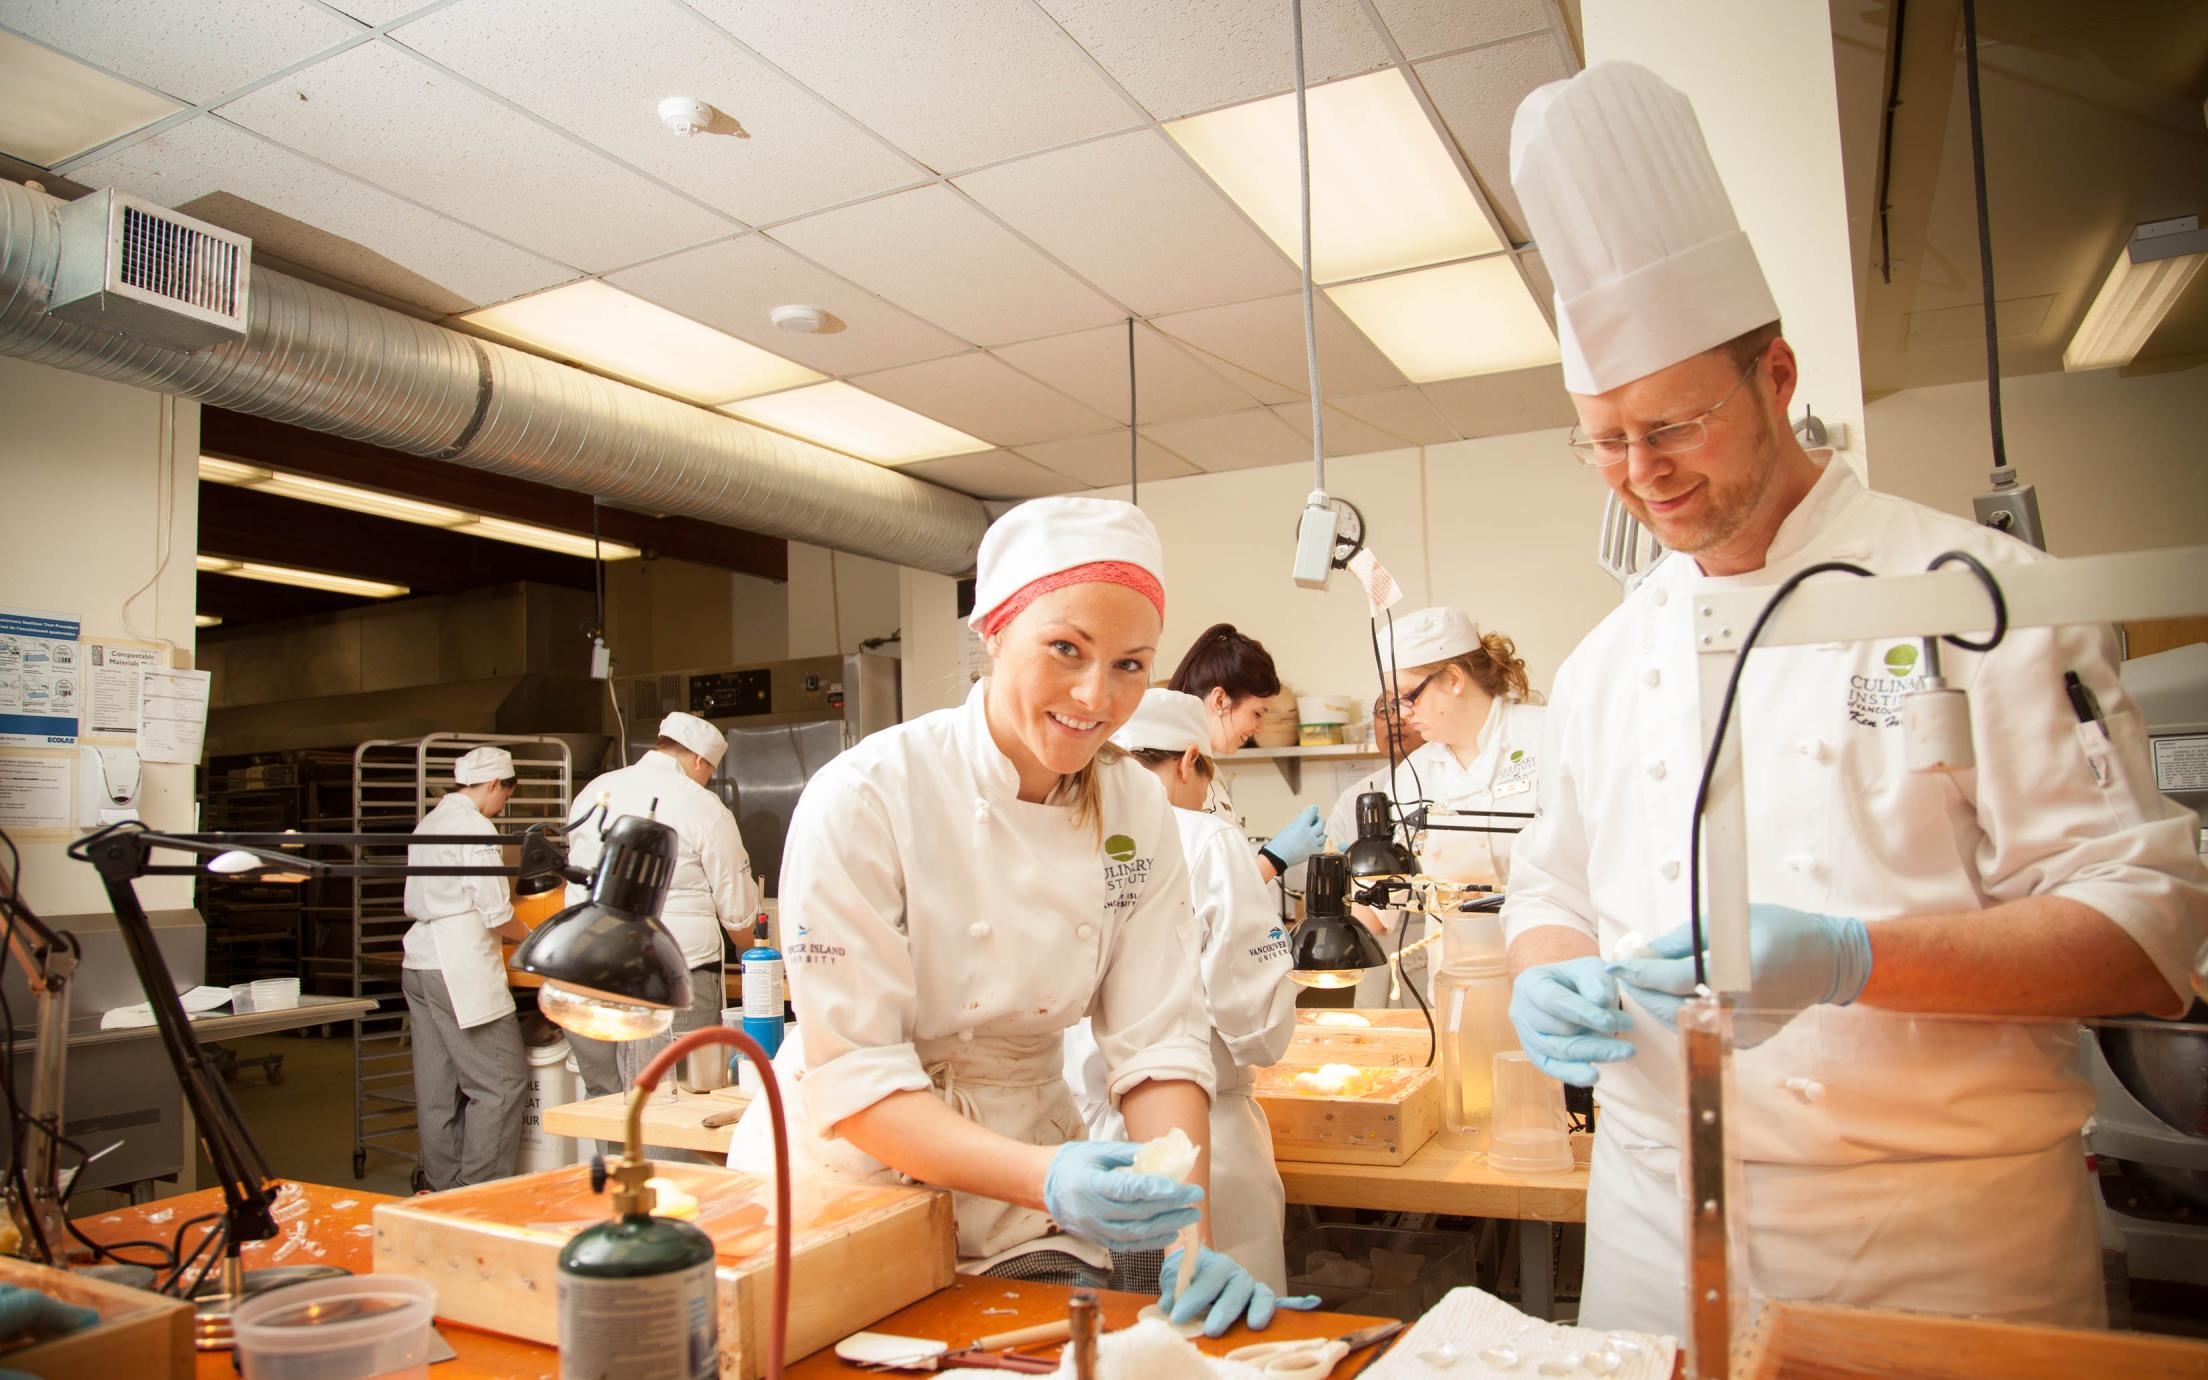 Students of the Professional Baking and Pastry Arts program decorating tasty treats at VIU's baking school